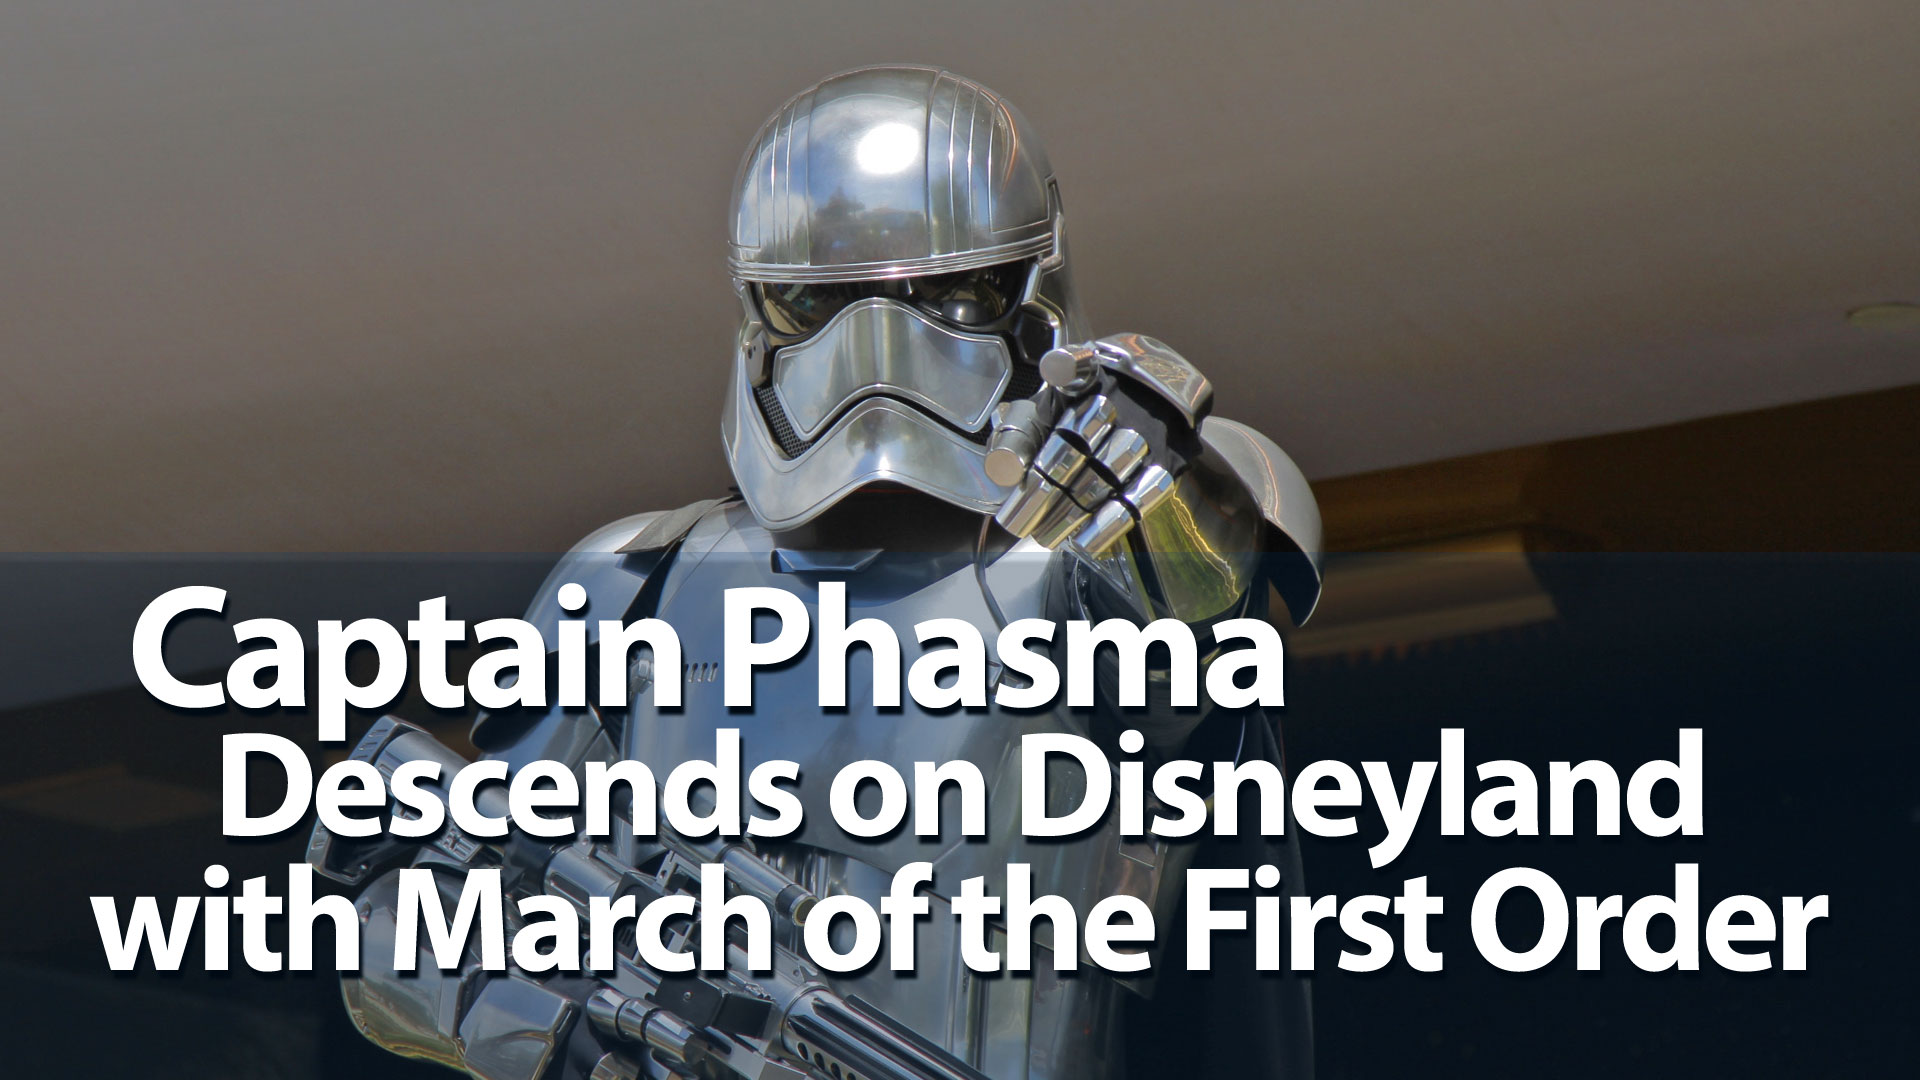 Captain Phasma Descends on Disneyland with March of the First Order